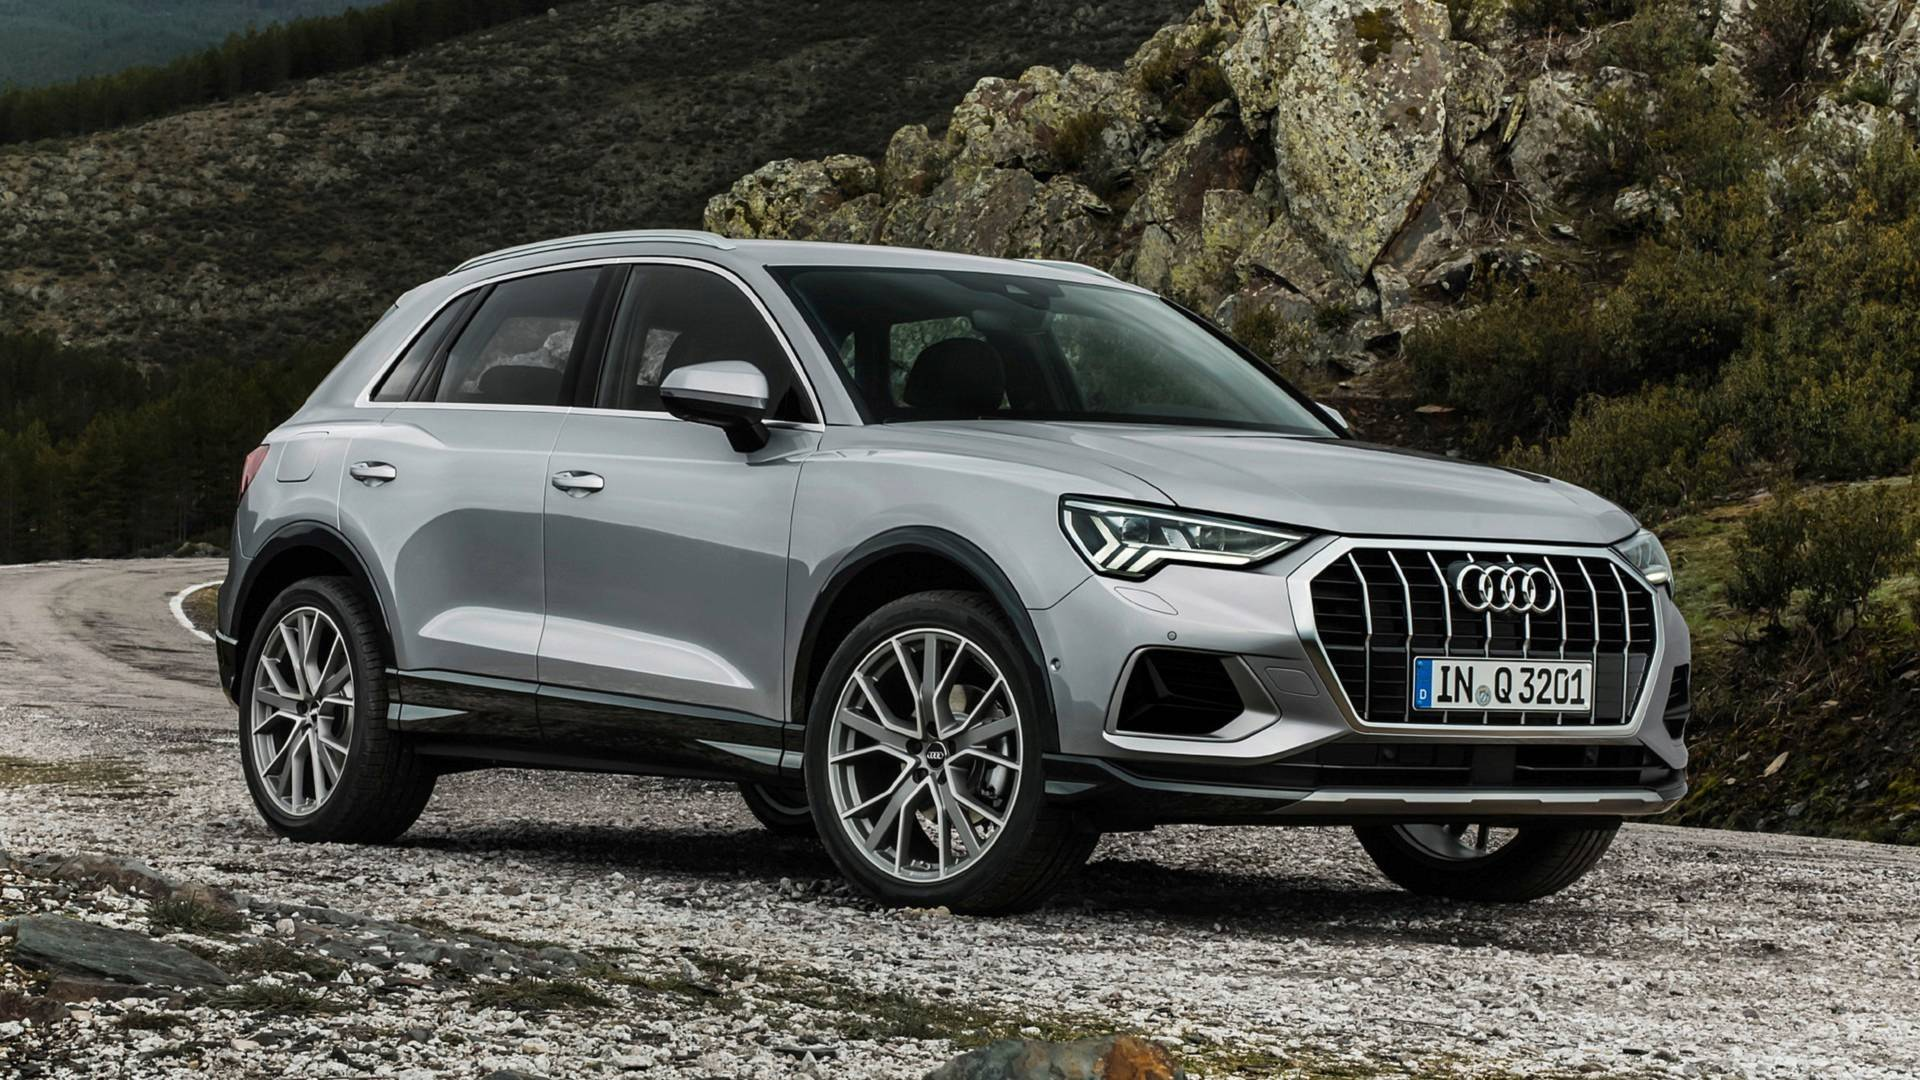 2019 Audi Q3 USA specifications